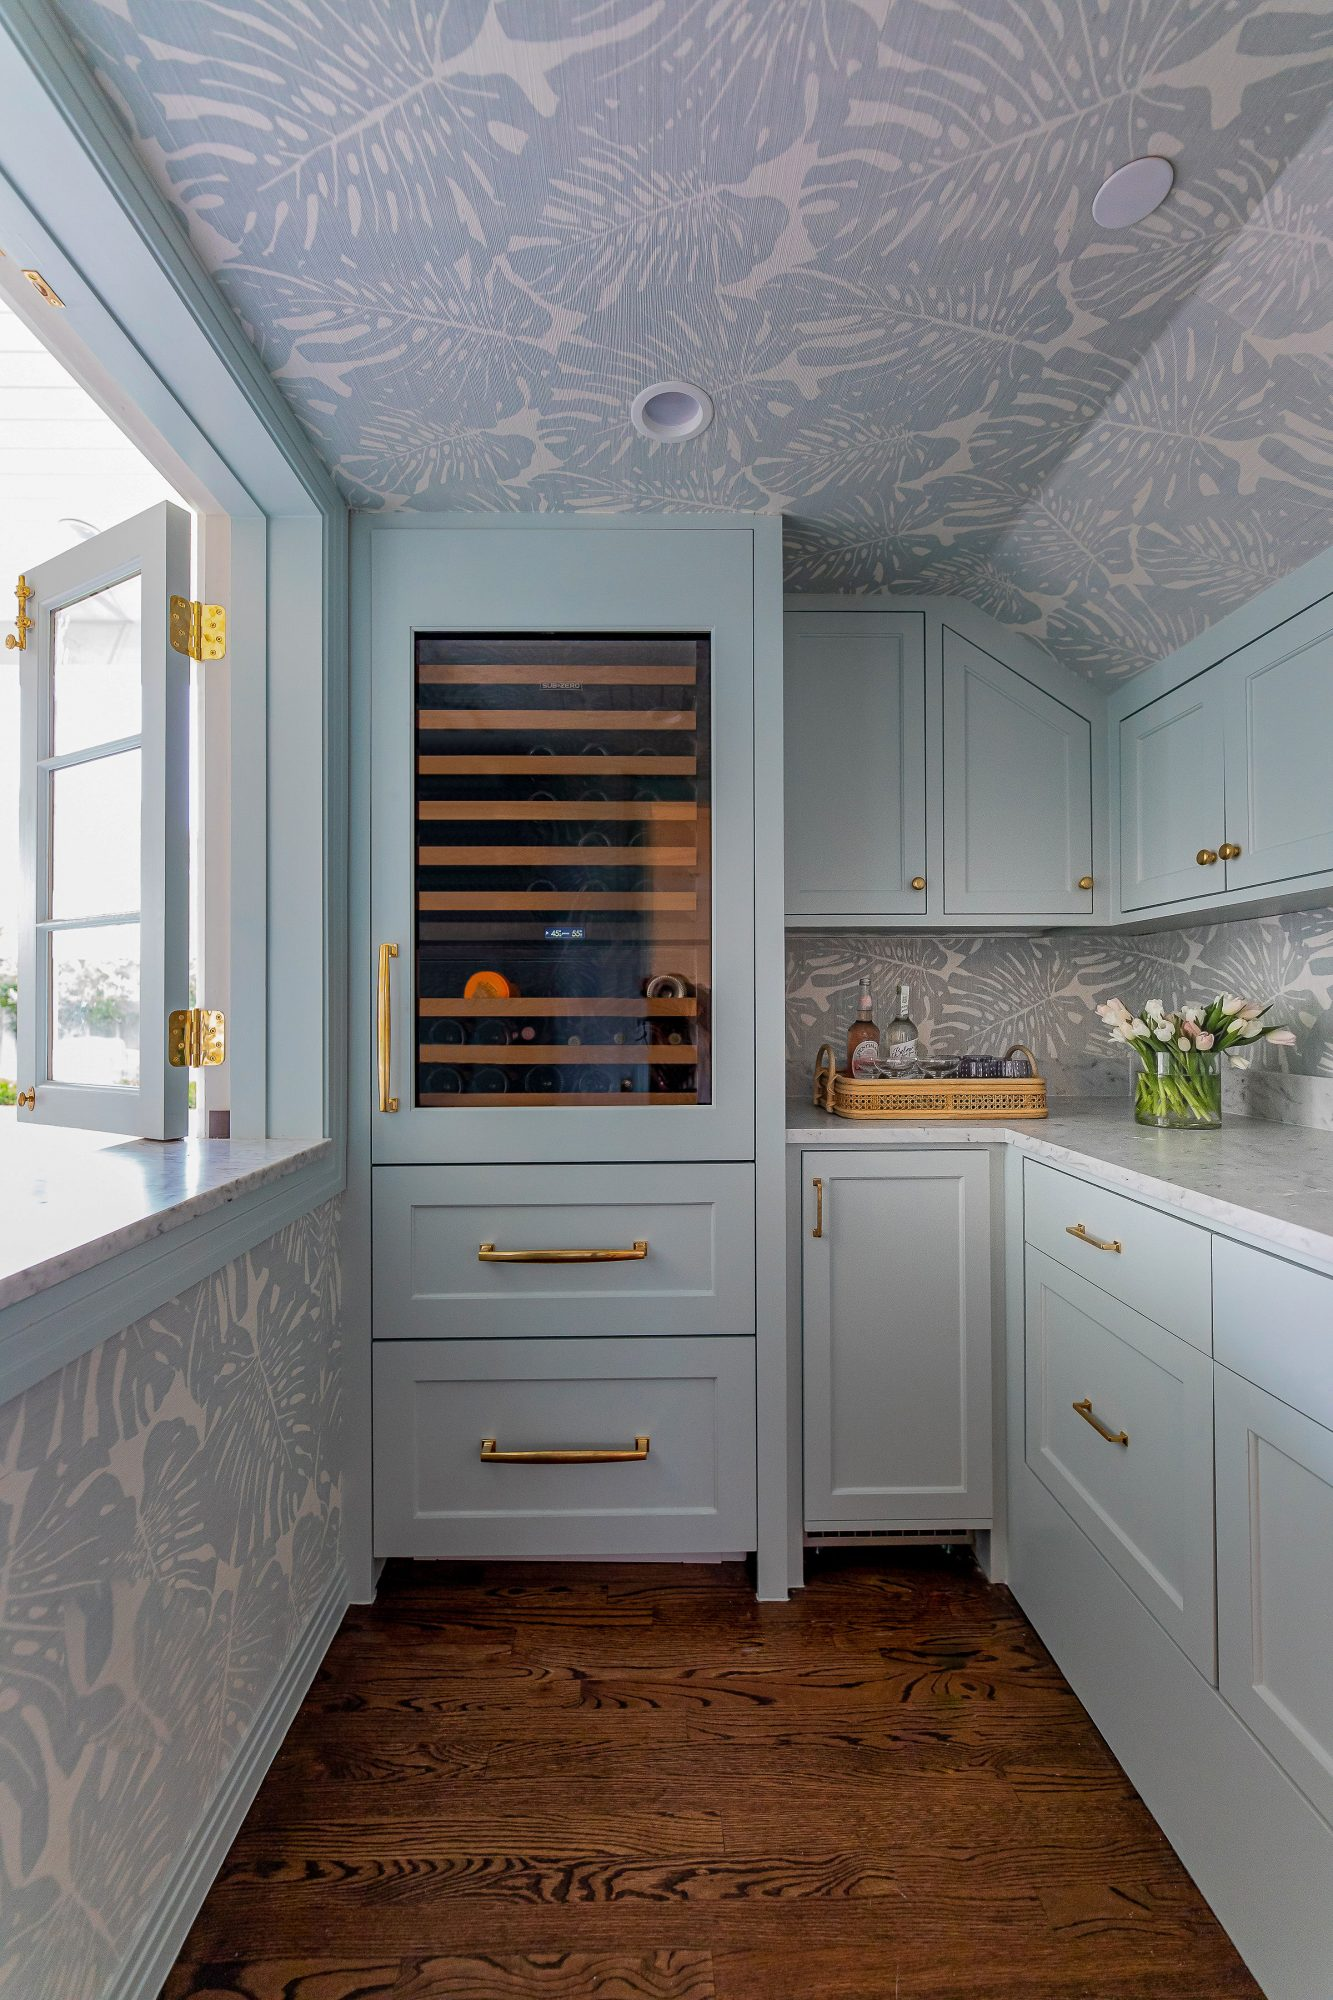 light blue cabinets and walls with blue print wallpaper